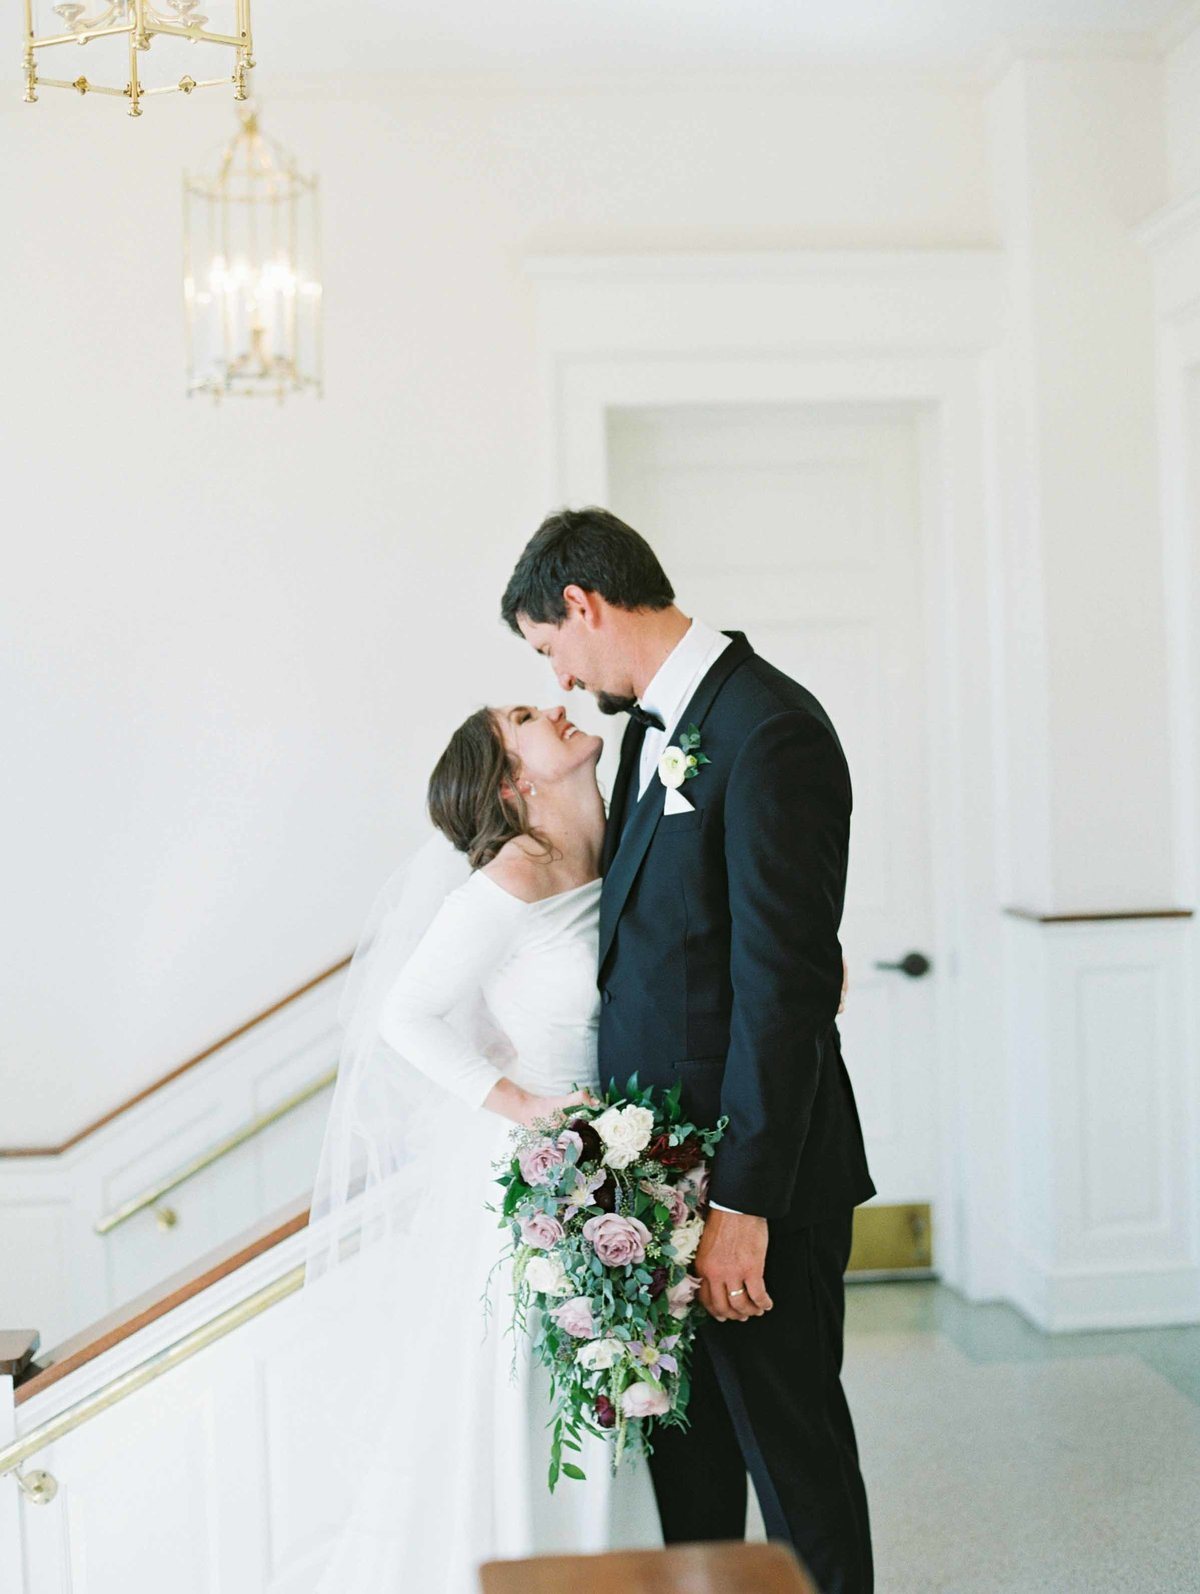 Angel_owens_photography_wedding_oliviarobert168